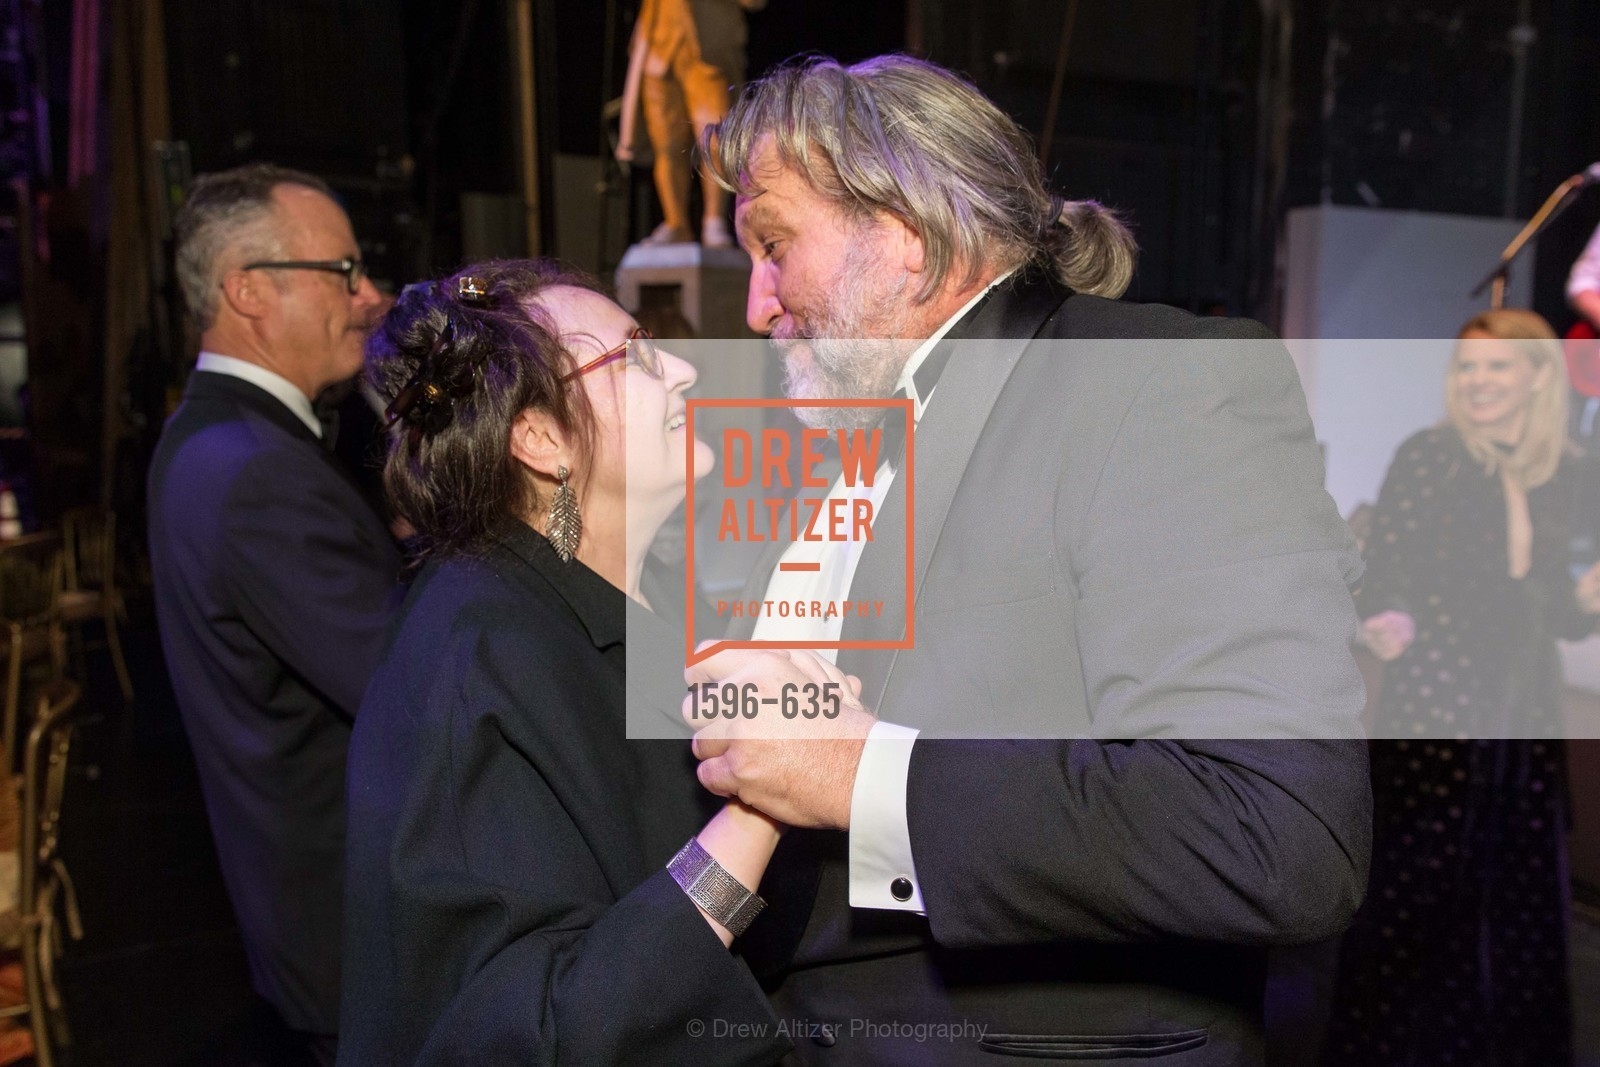 Extras, An Evening on the Stage Honoring Renaissance Man Gordon Getty, December 7th, 2015, Photo,Drew Altizer, Drew Altizer Photography, full-service agency, private events, San Francisco photographer, photographer california